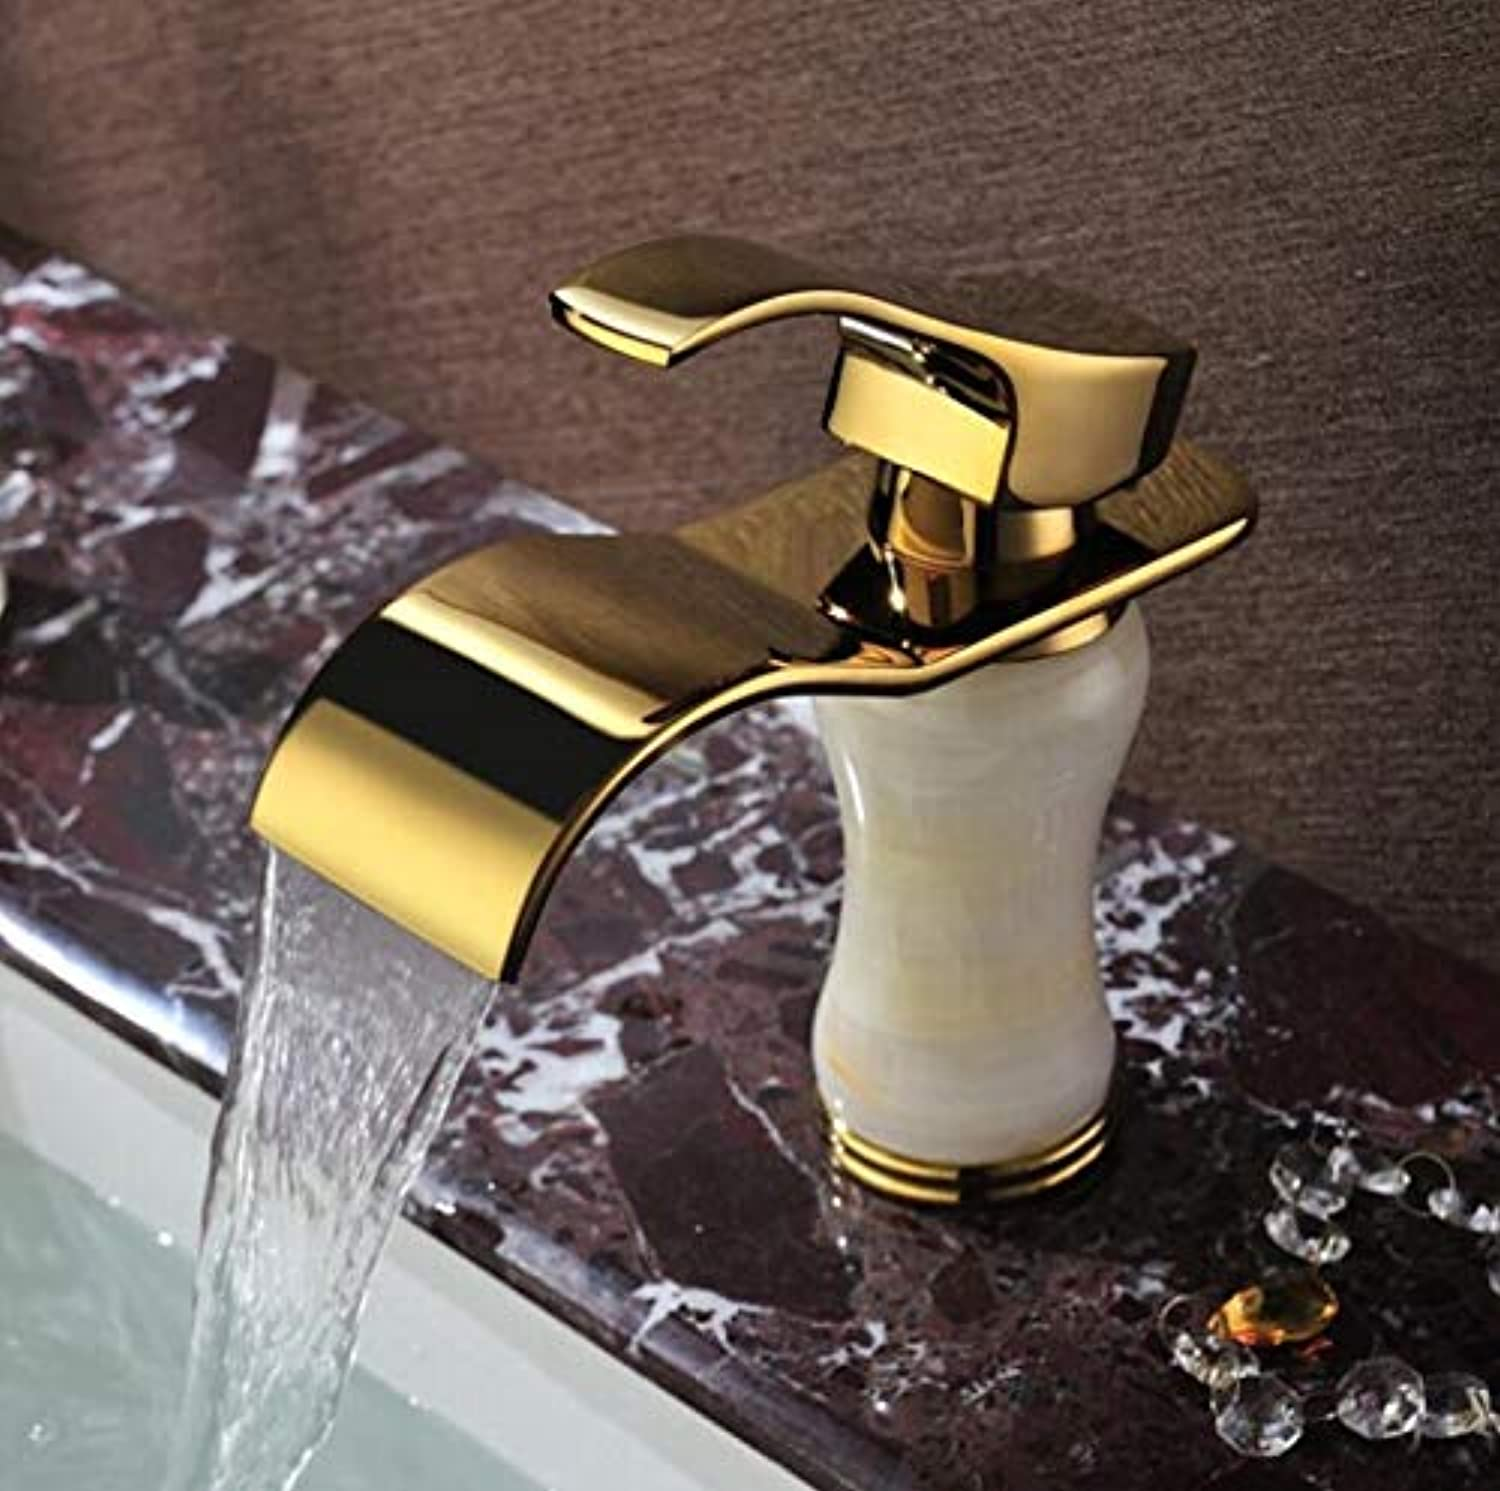 Basin Faucet,basin Waterfall Marble gold-plated Faucet, European Antique Single-sided, Hot And Cold Copper Natural Jade, Classic